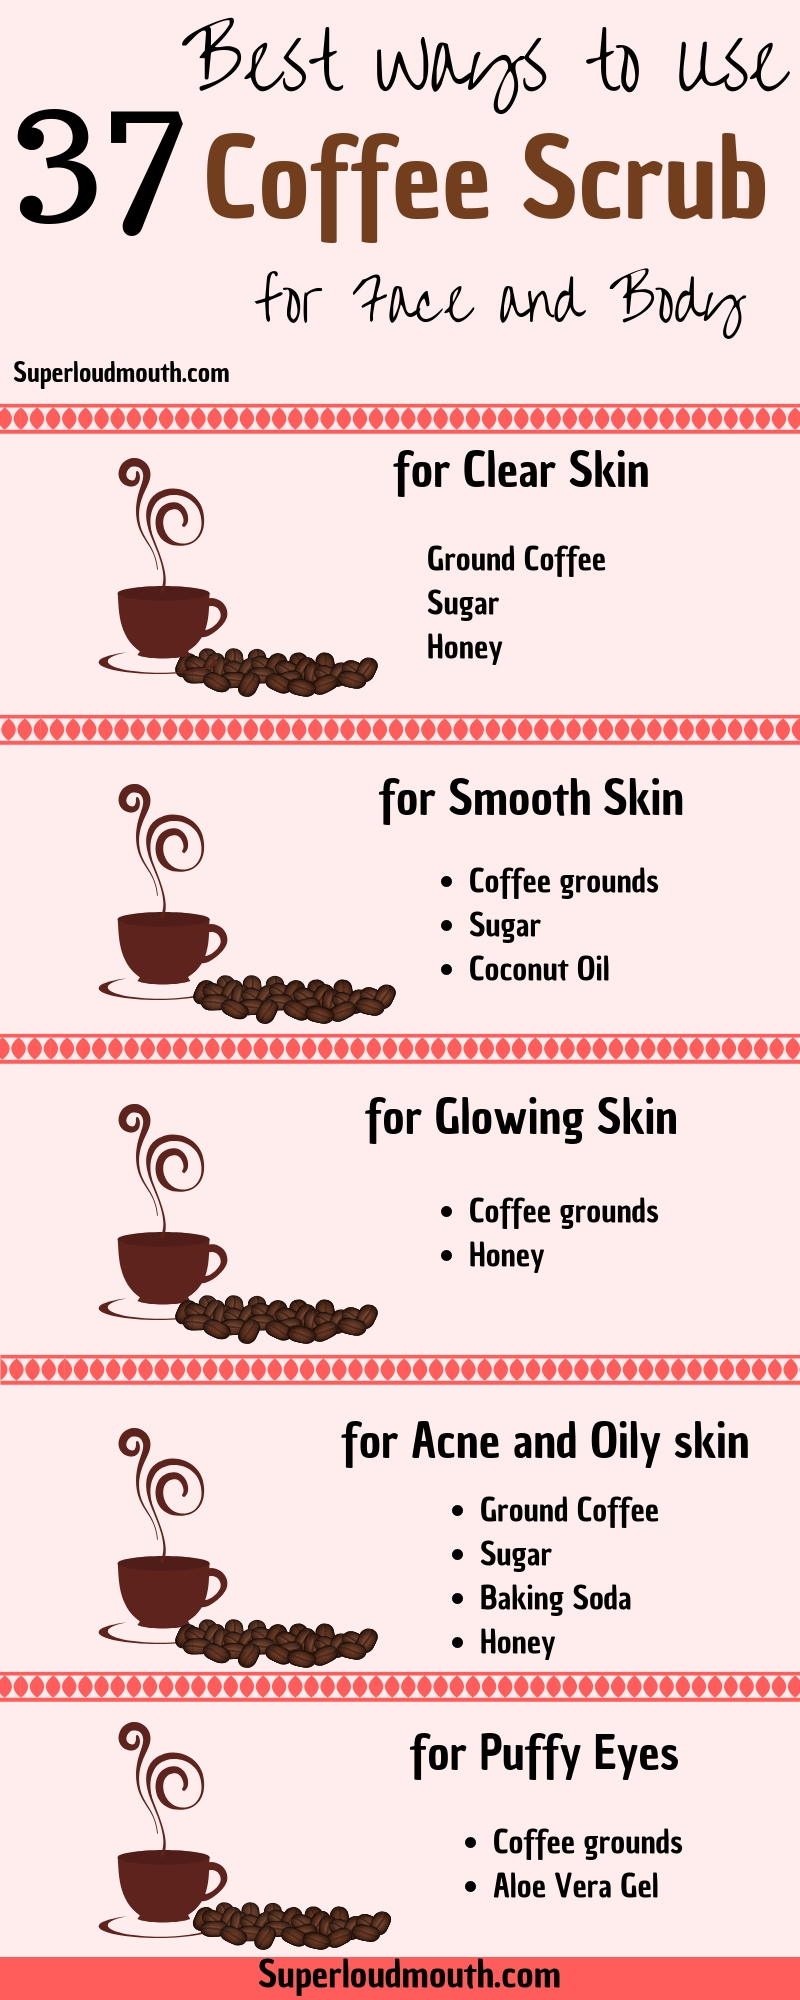 37 Diy Coffee Scrub Recipes for a Beautiful Face, Body and Cellulite